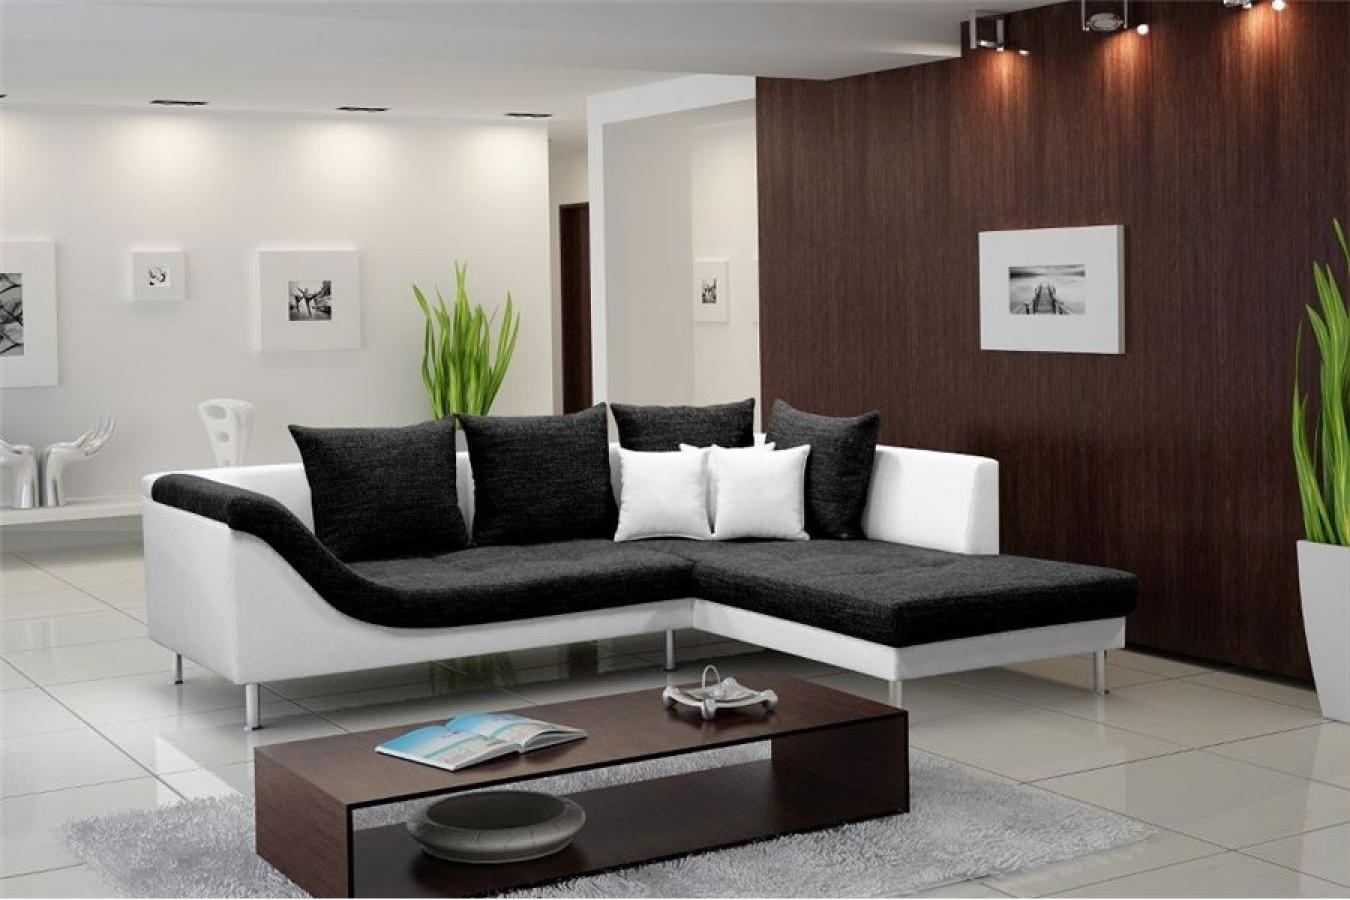 photos canap angle design pas cher. Black Bedroom Furniture Sets. Home Design Ideas